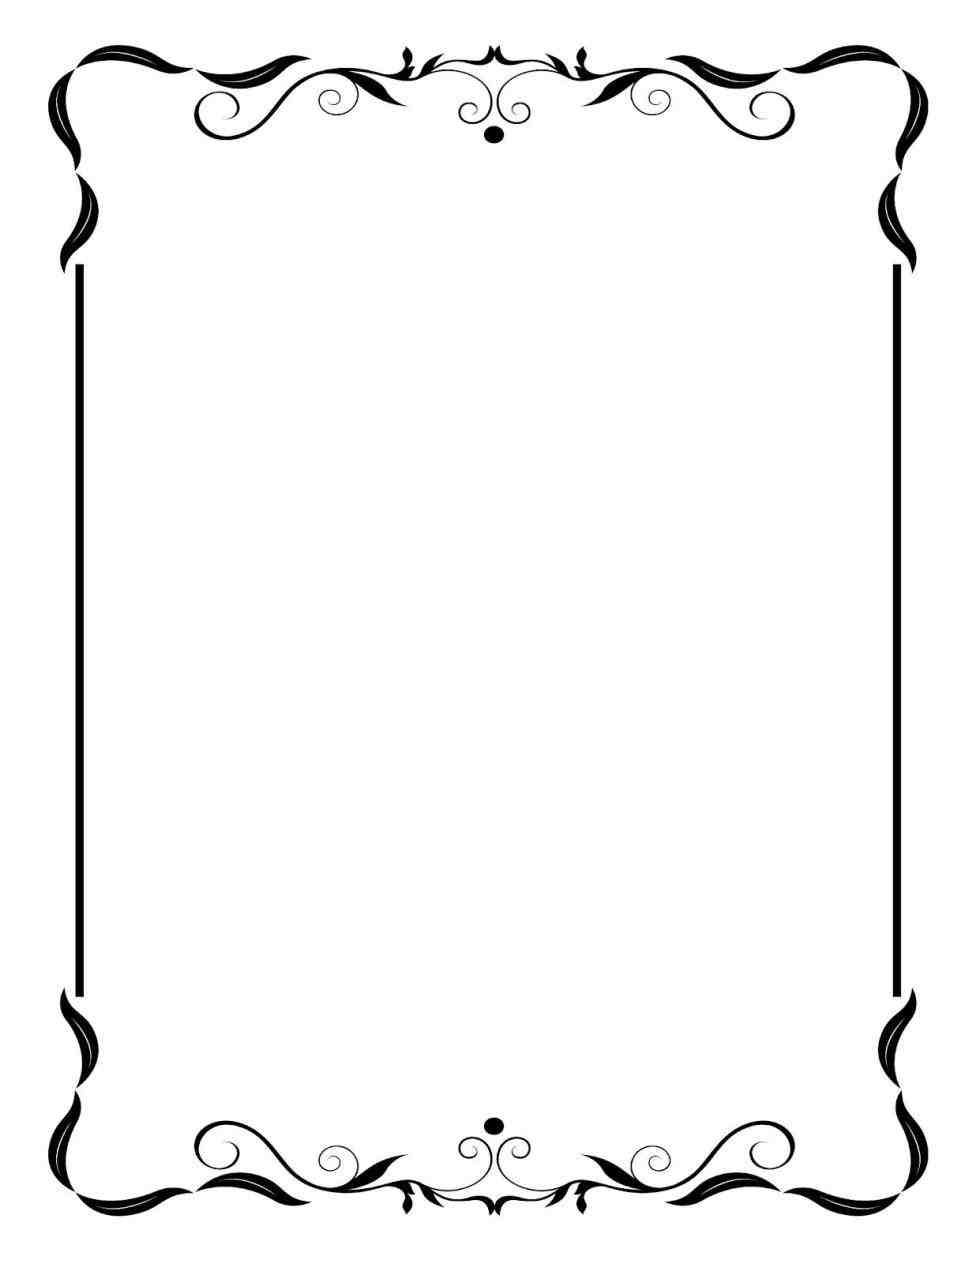 picture transparent stock Vintage border png weddings. Wedding borders clipart